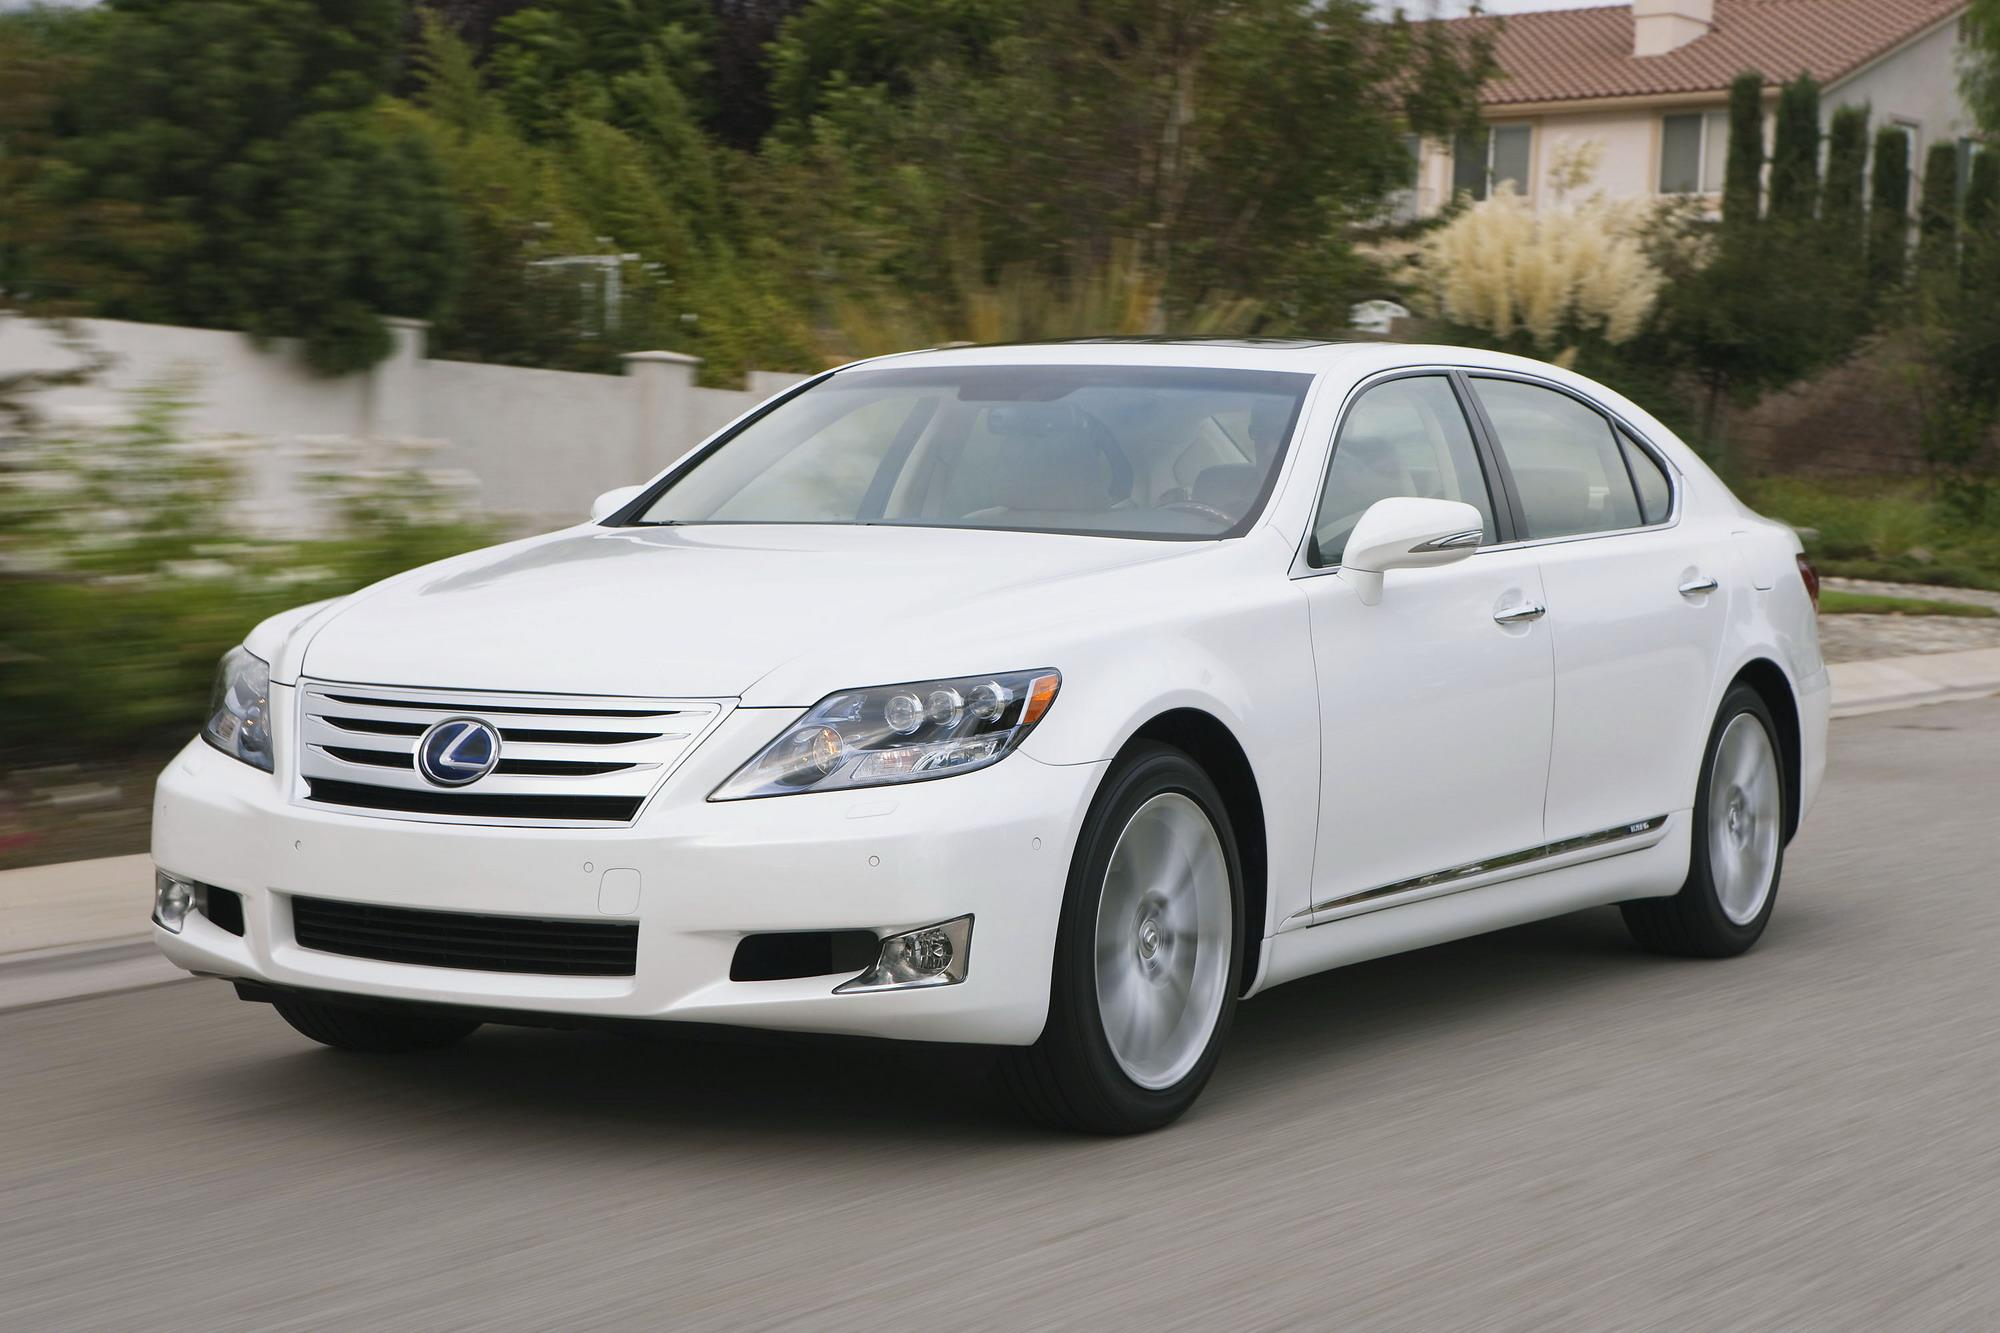 2010 lexus ls 600h l hybrid top speed. Black Bedroom Furniture Sets. Home Design Ideas